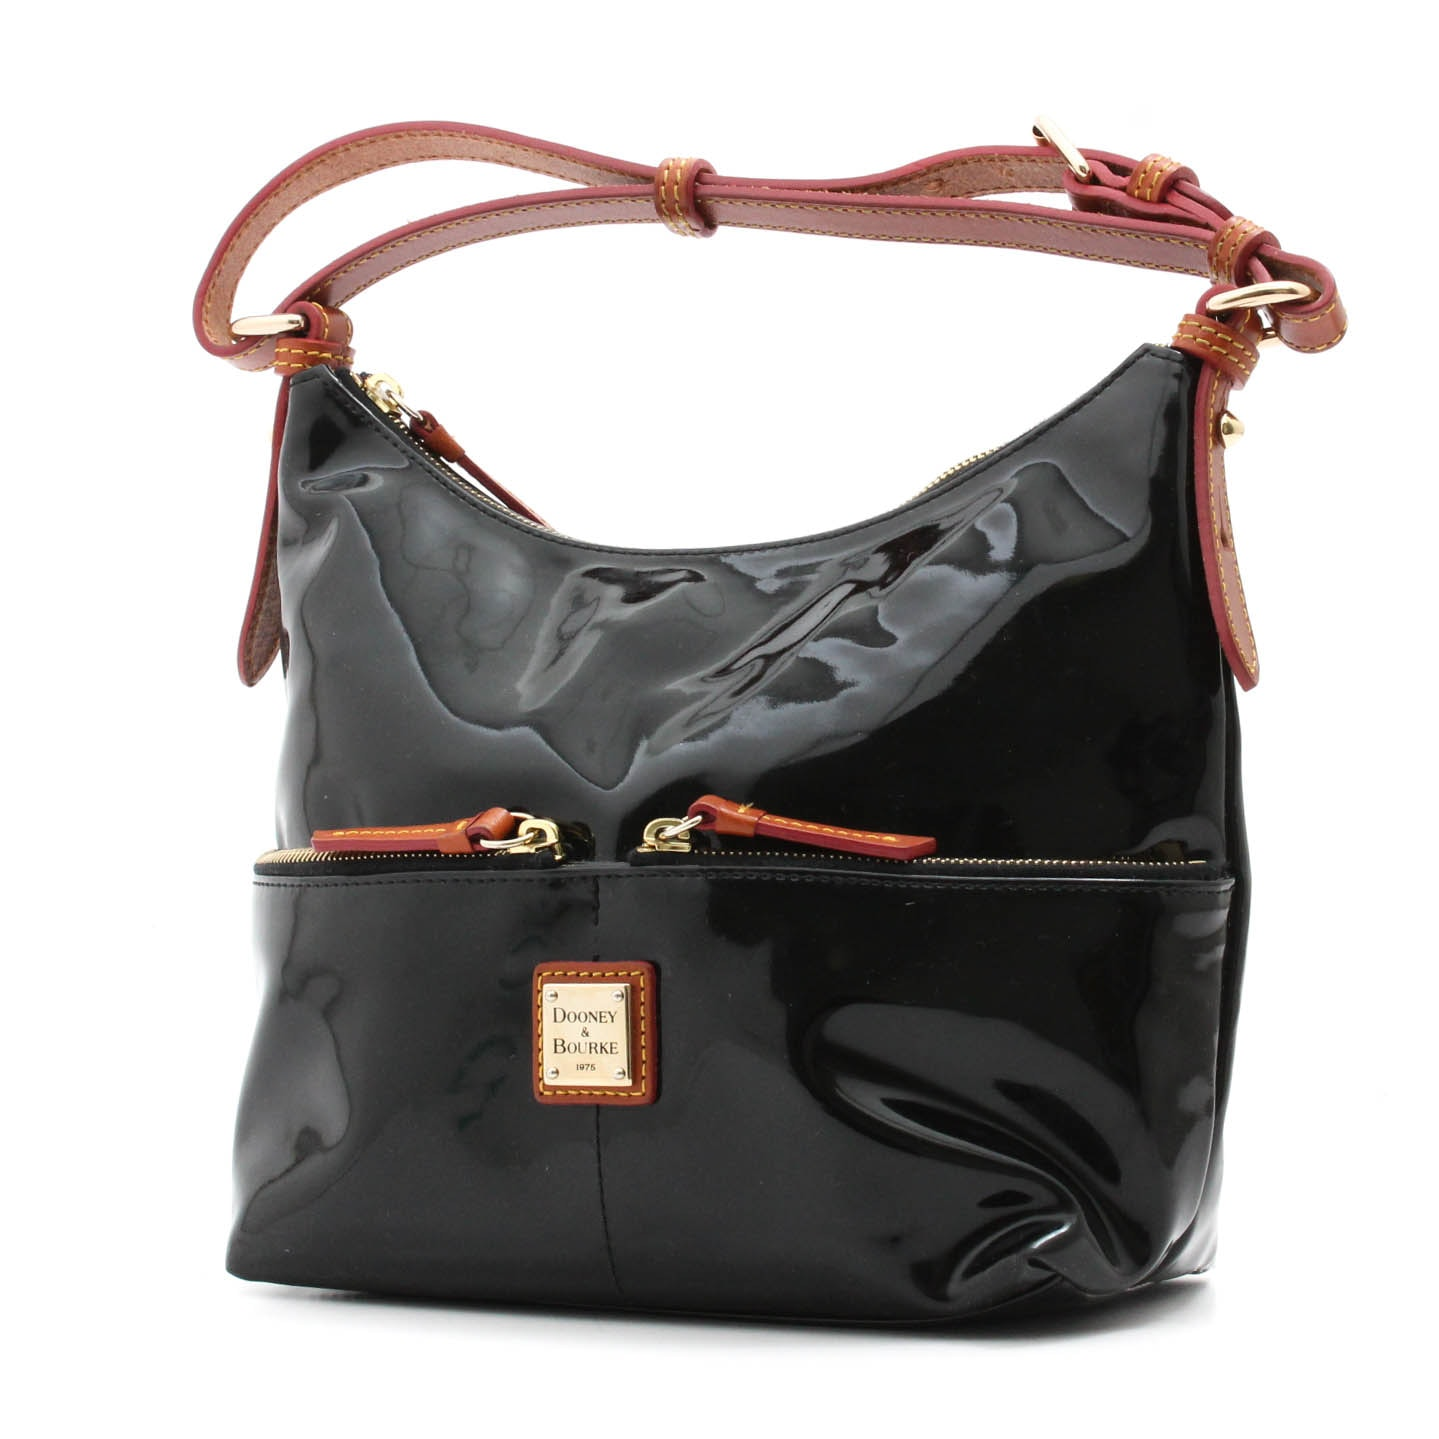 Dooney & Bourke Black Patent and Brown Leather Handbag